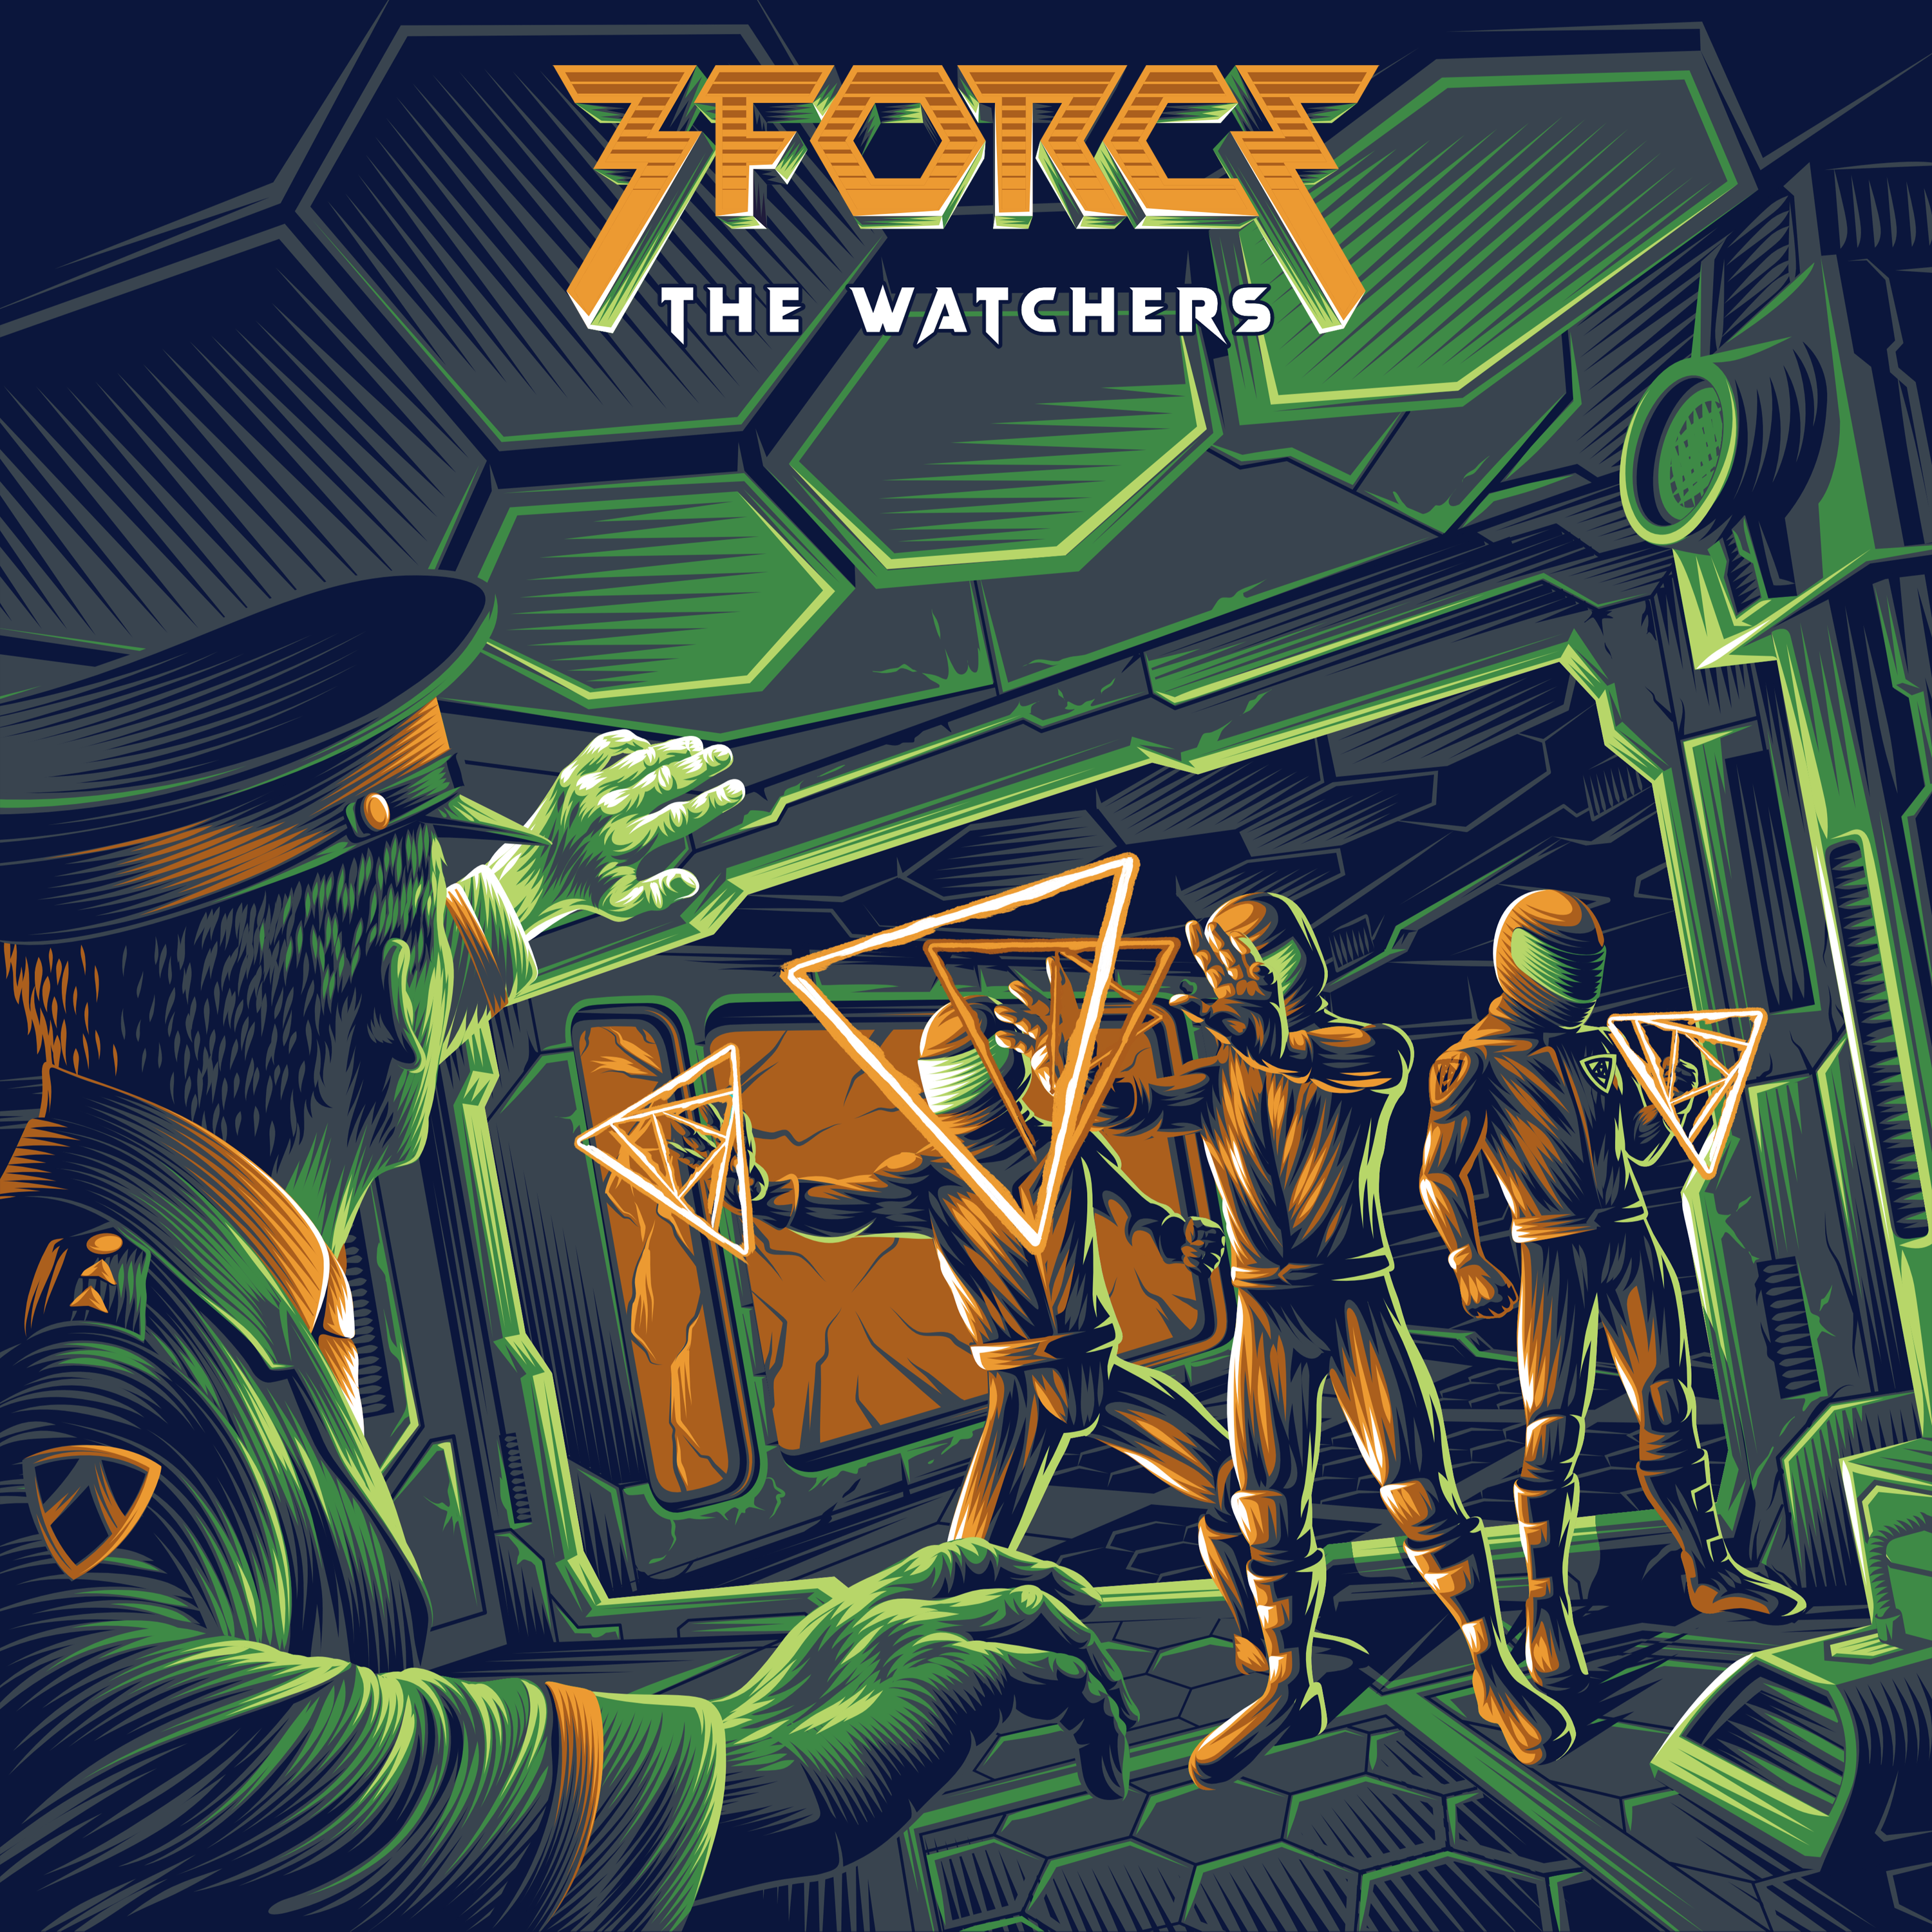 3FORCE - The Watchers (Single) Image